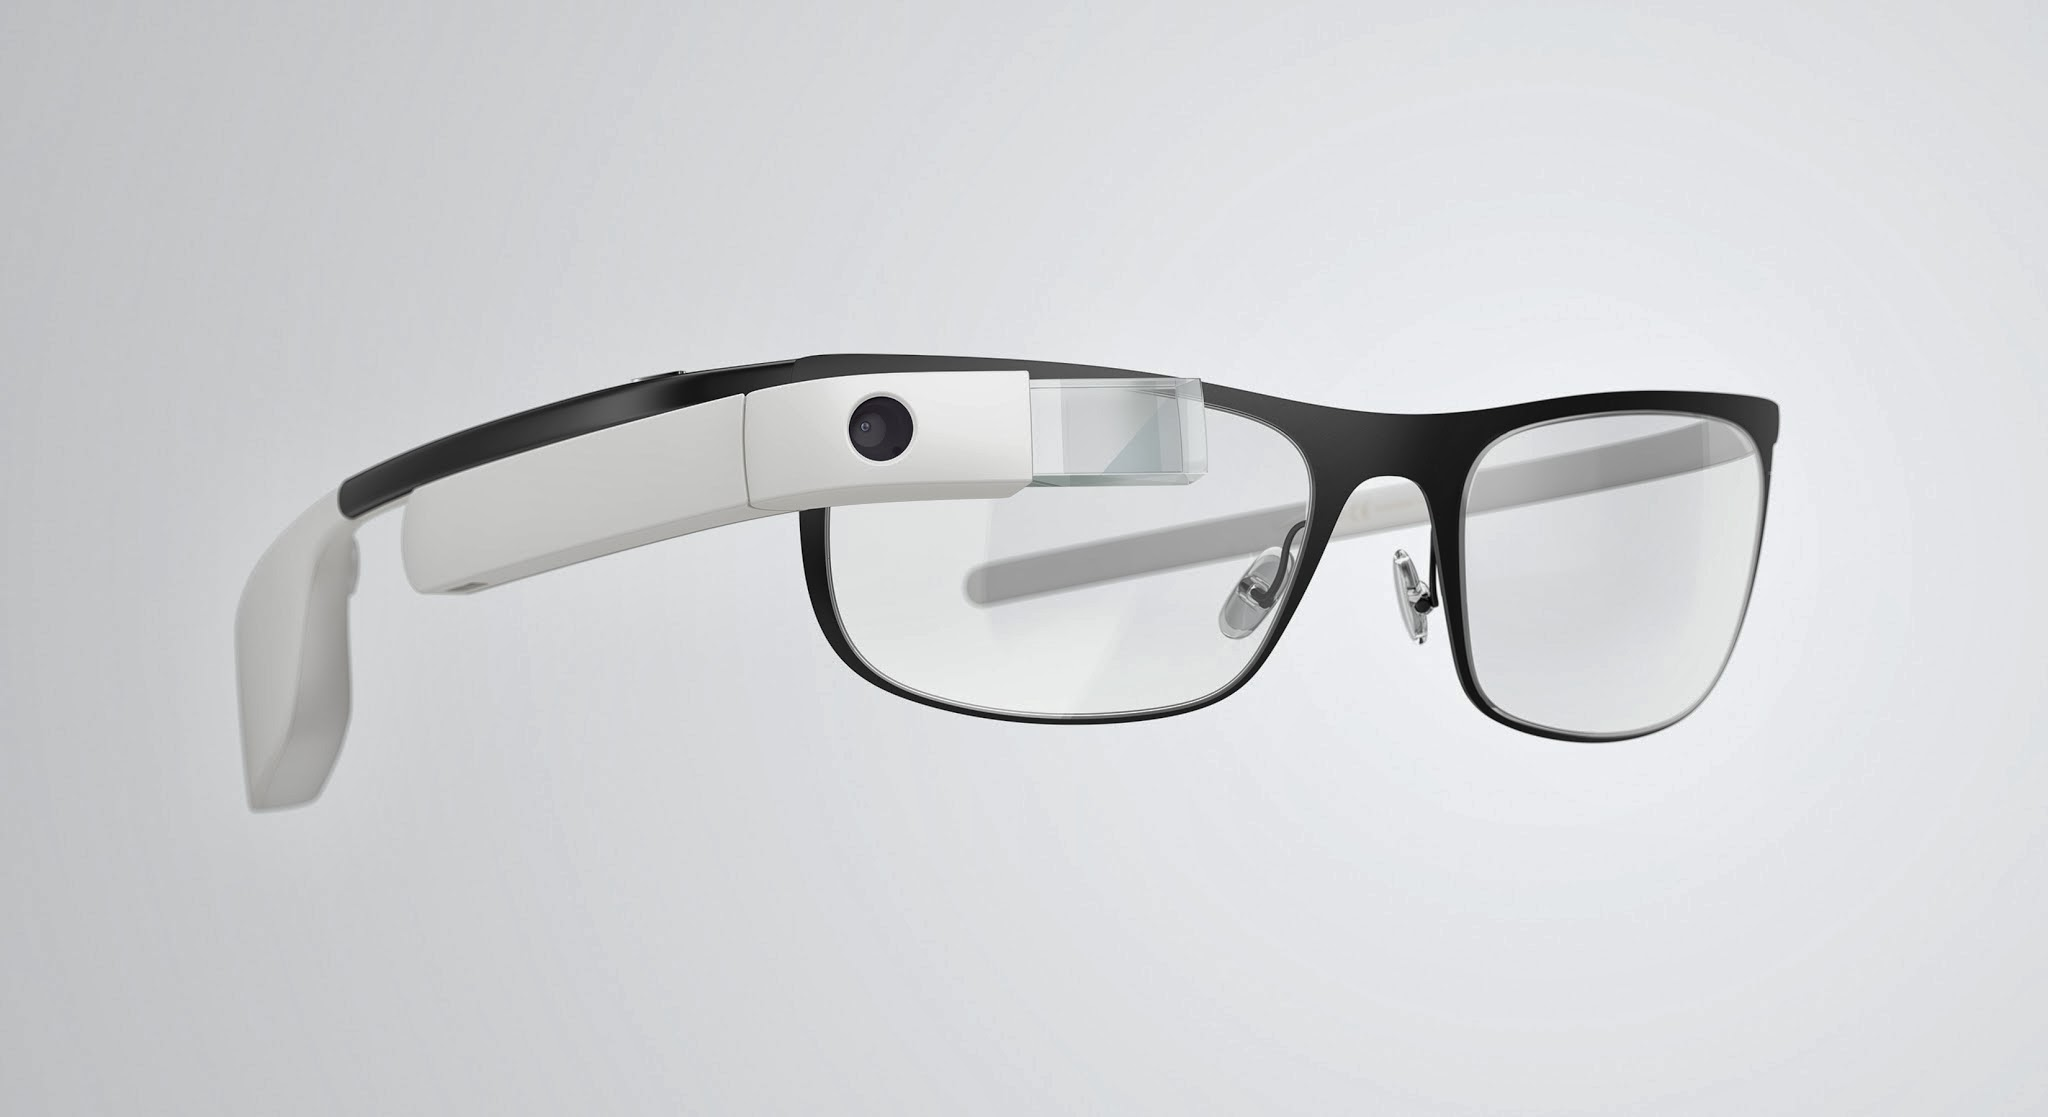 glass7 Google Glass can now be used with regular glasses after Google introduces $225 frames